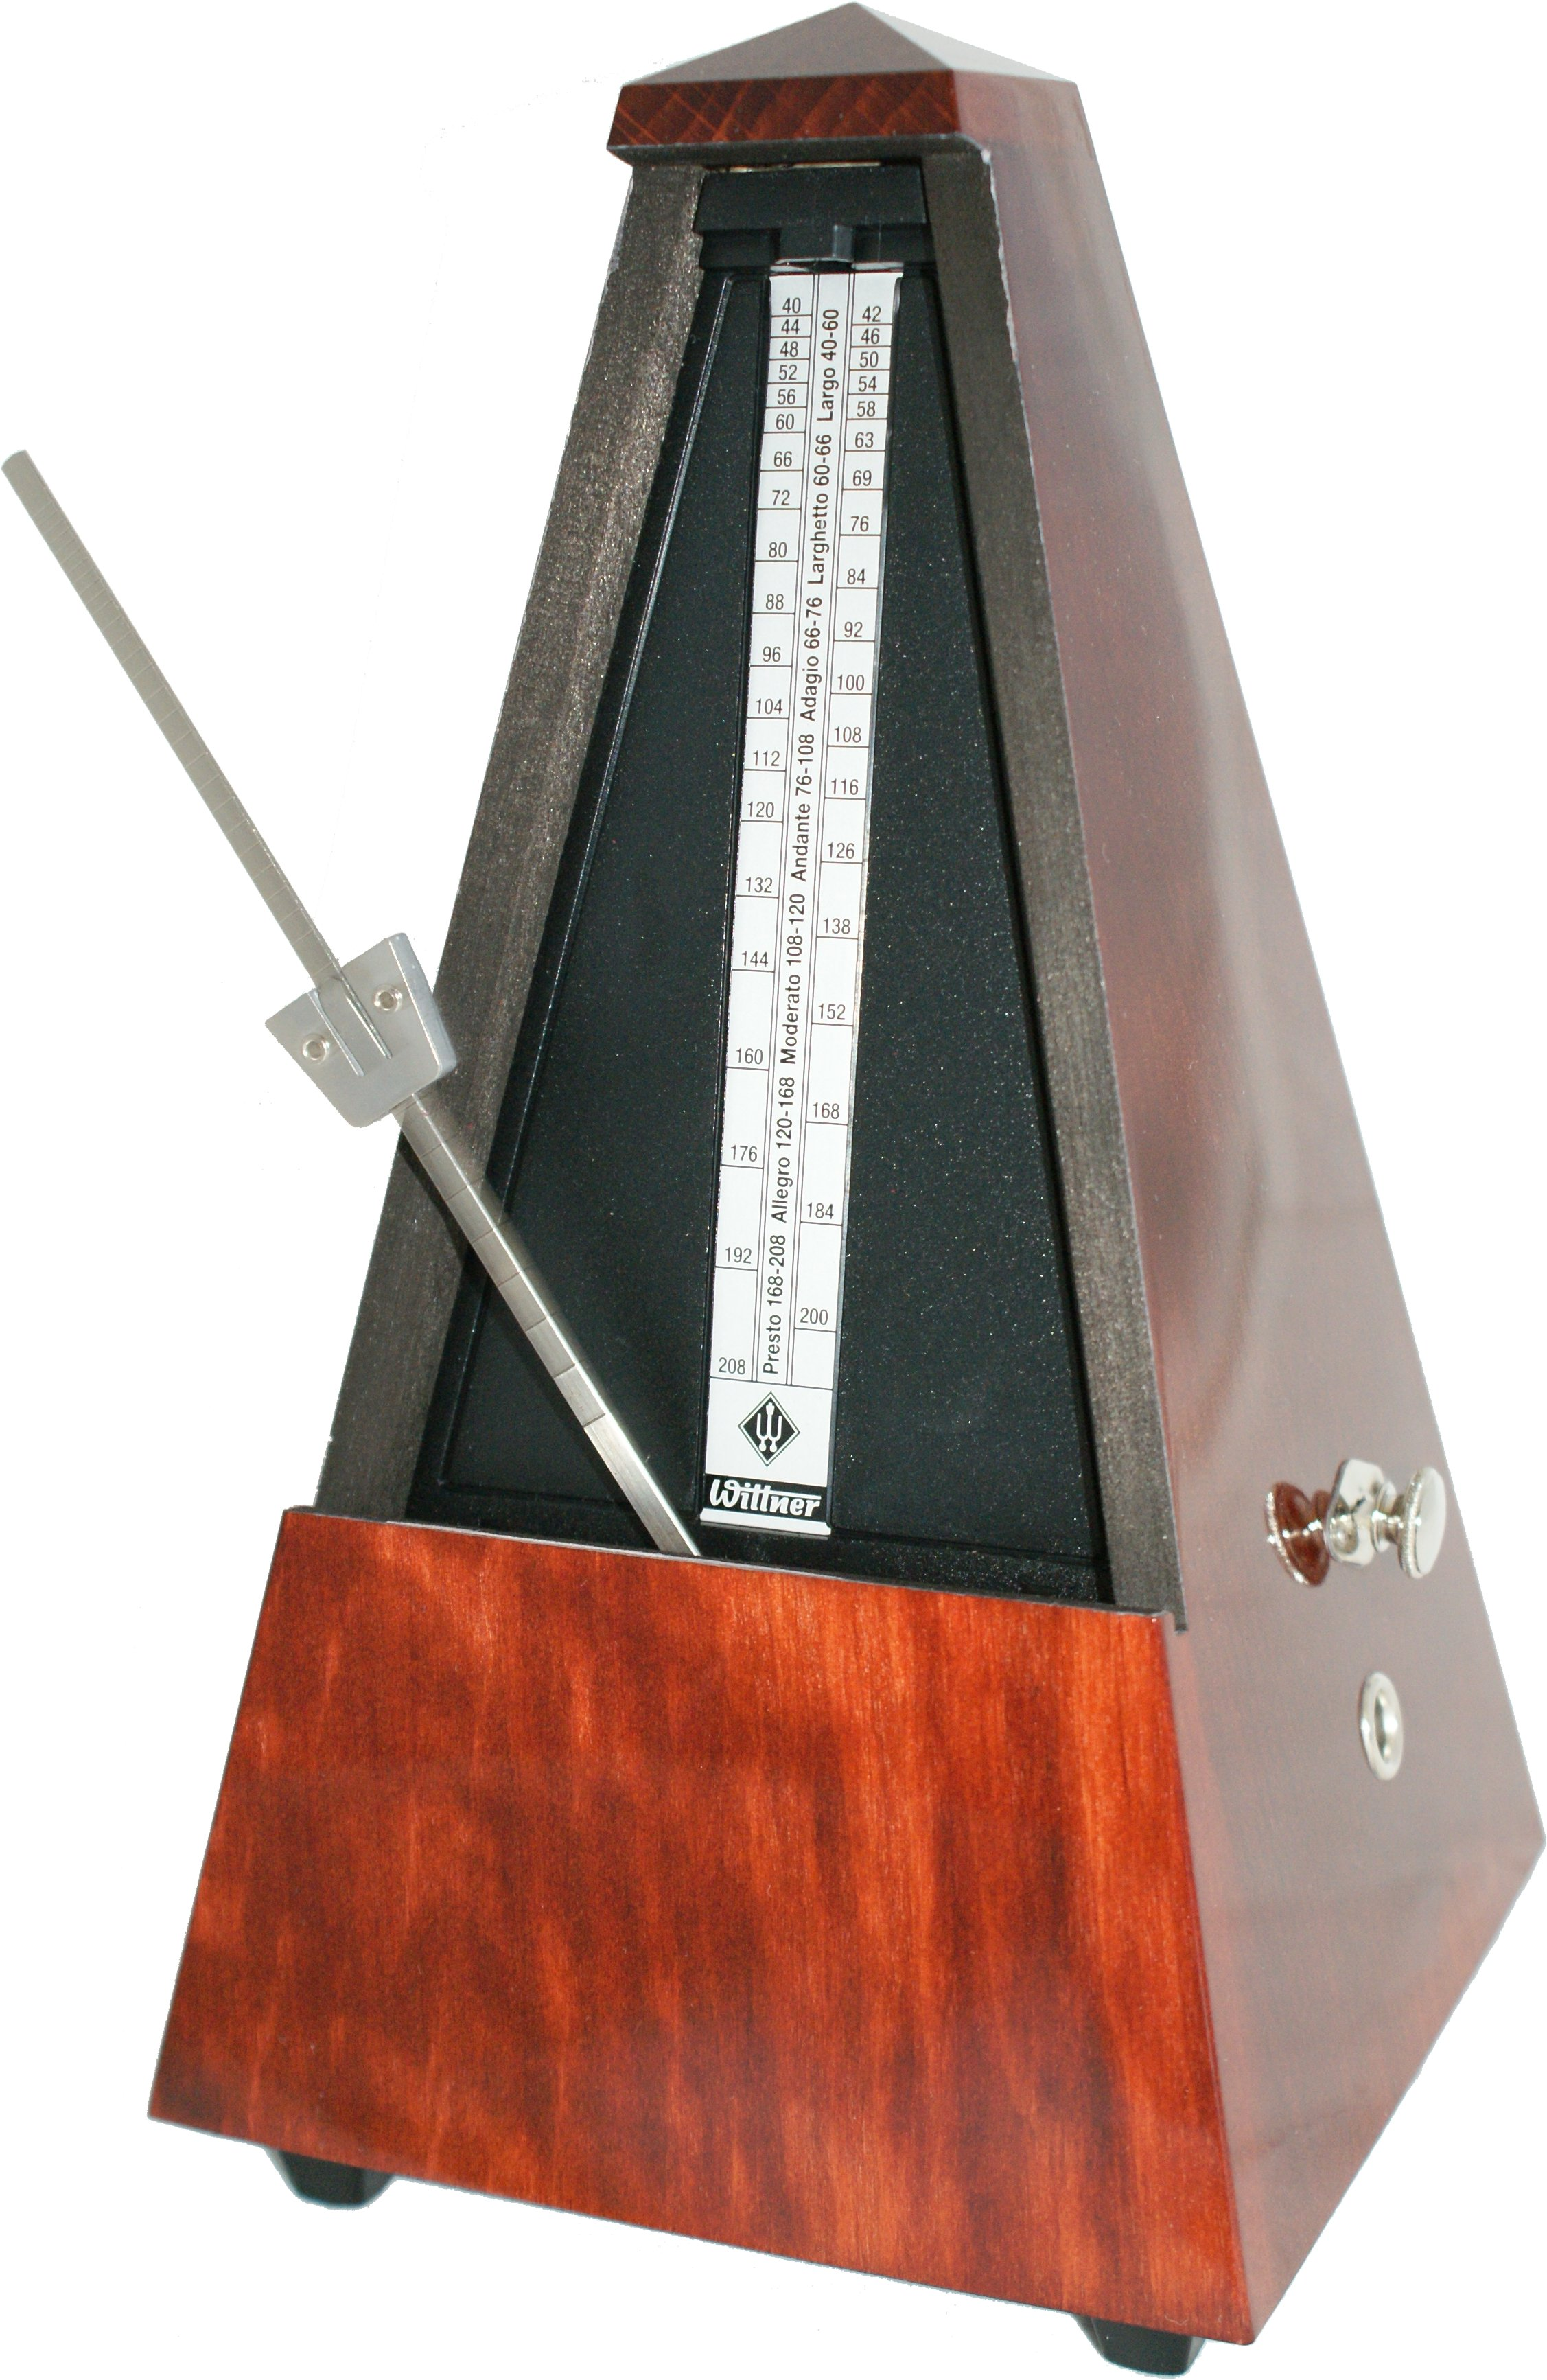 Metronome Wooden Mahogany Colour With Bell: Metronome